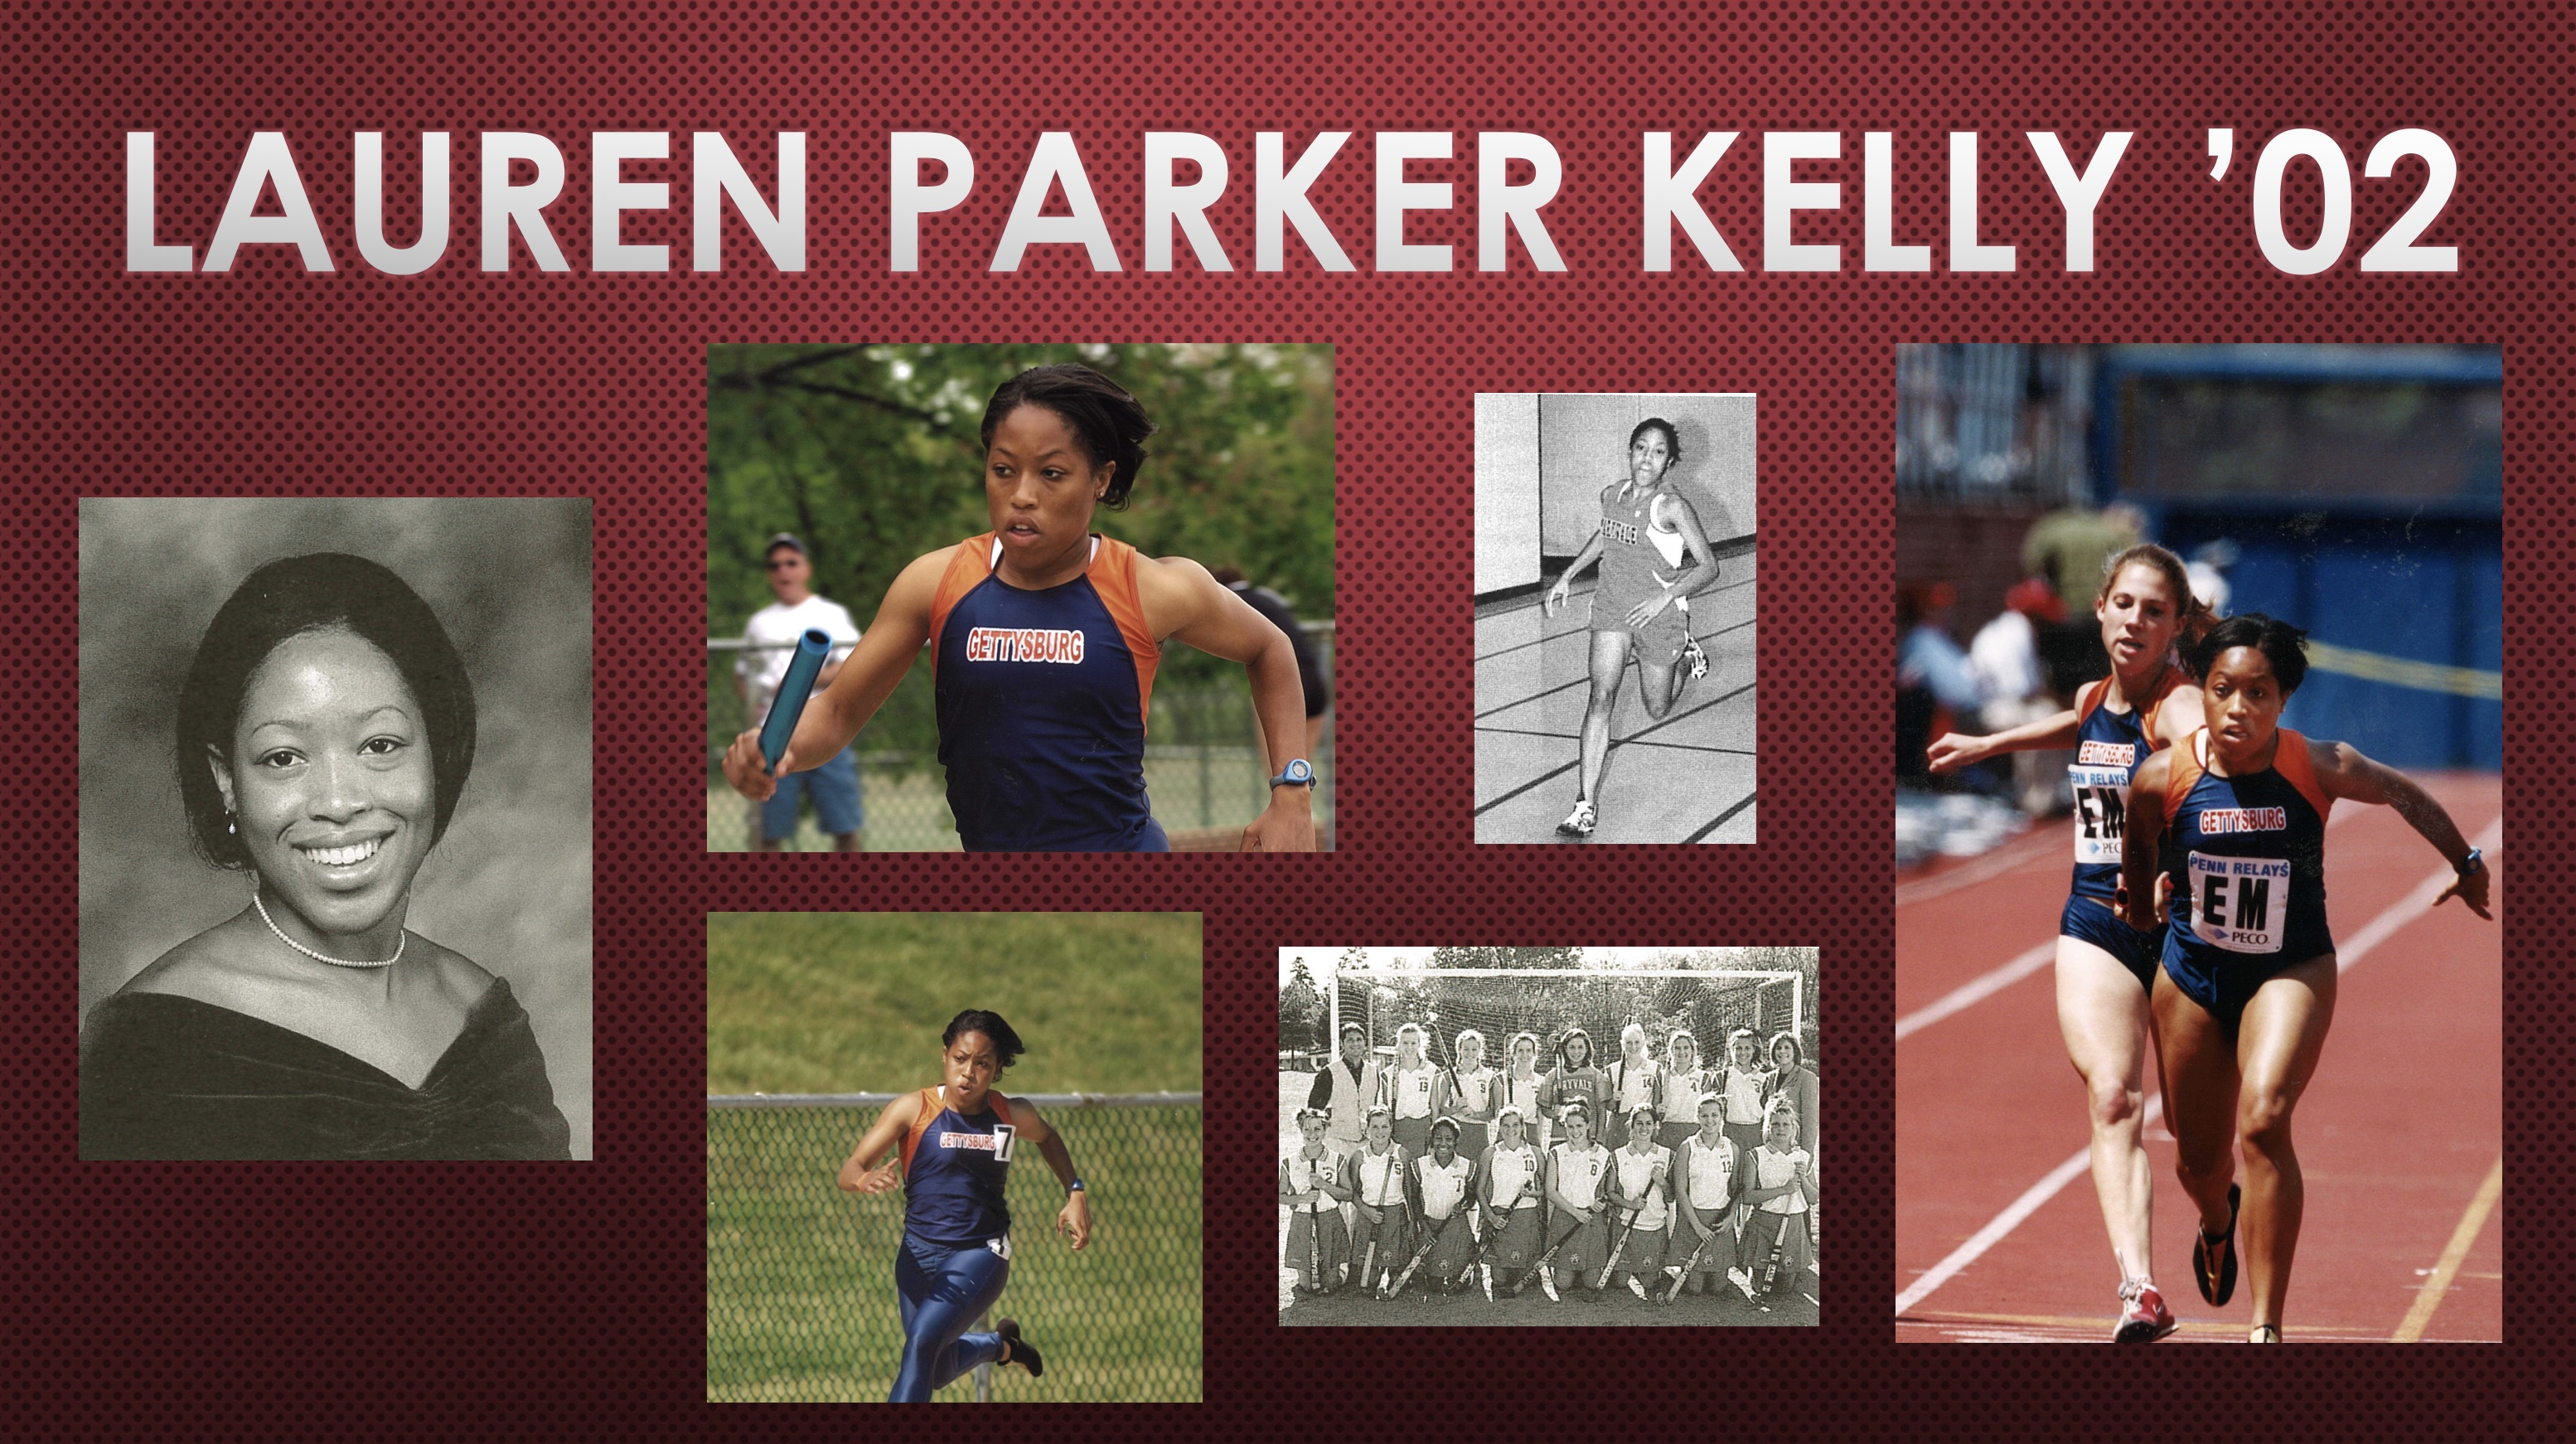 2018 Athletic Hall of Fame Inductee: Lauren Parker Kelly '02